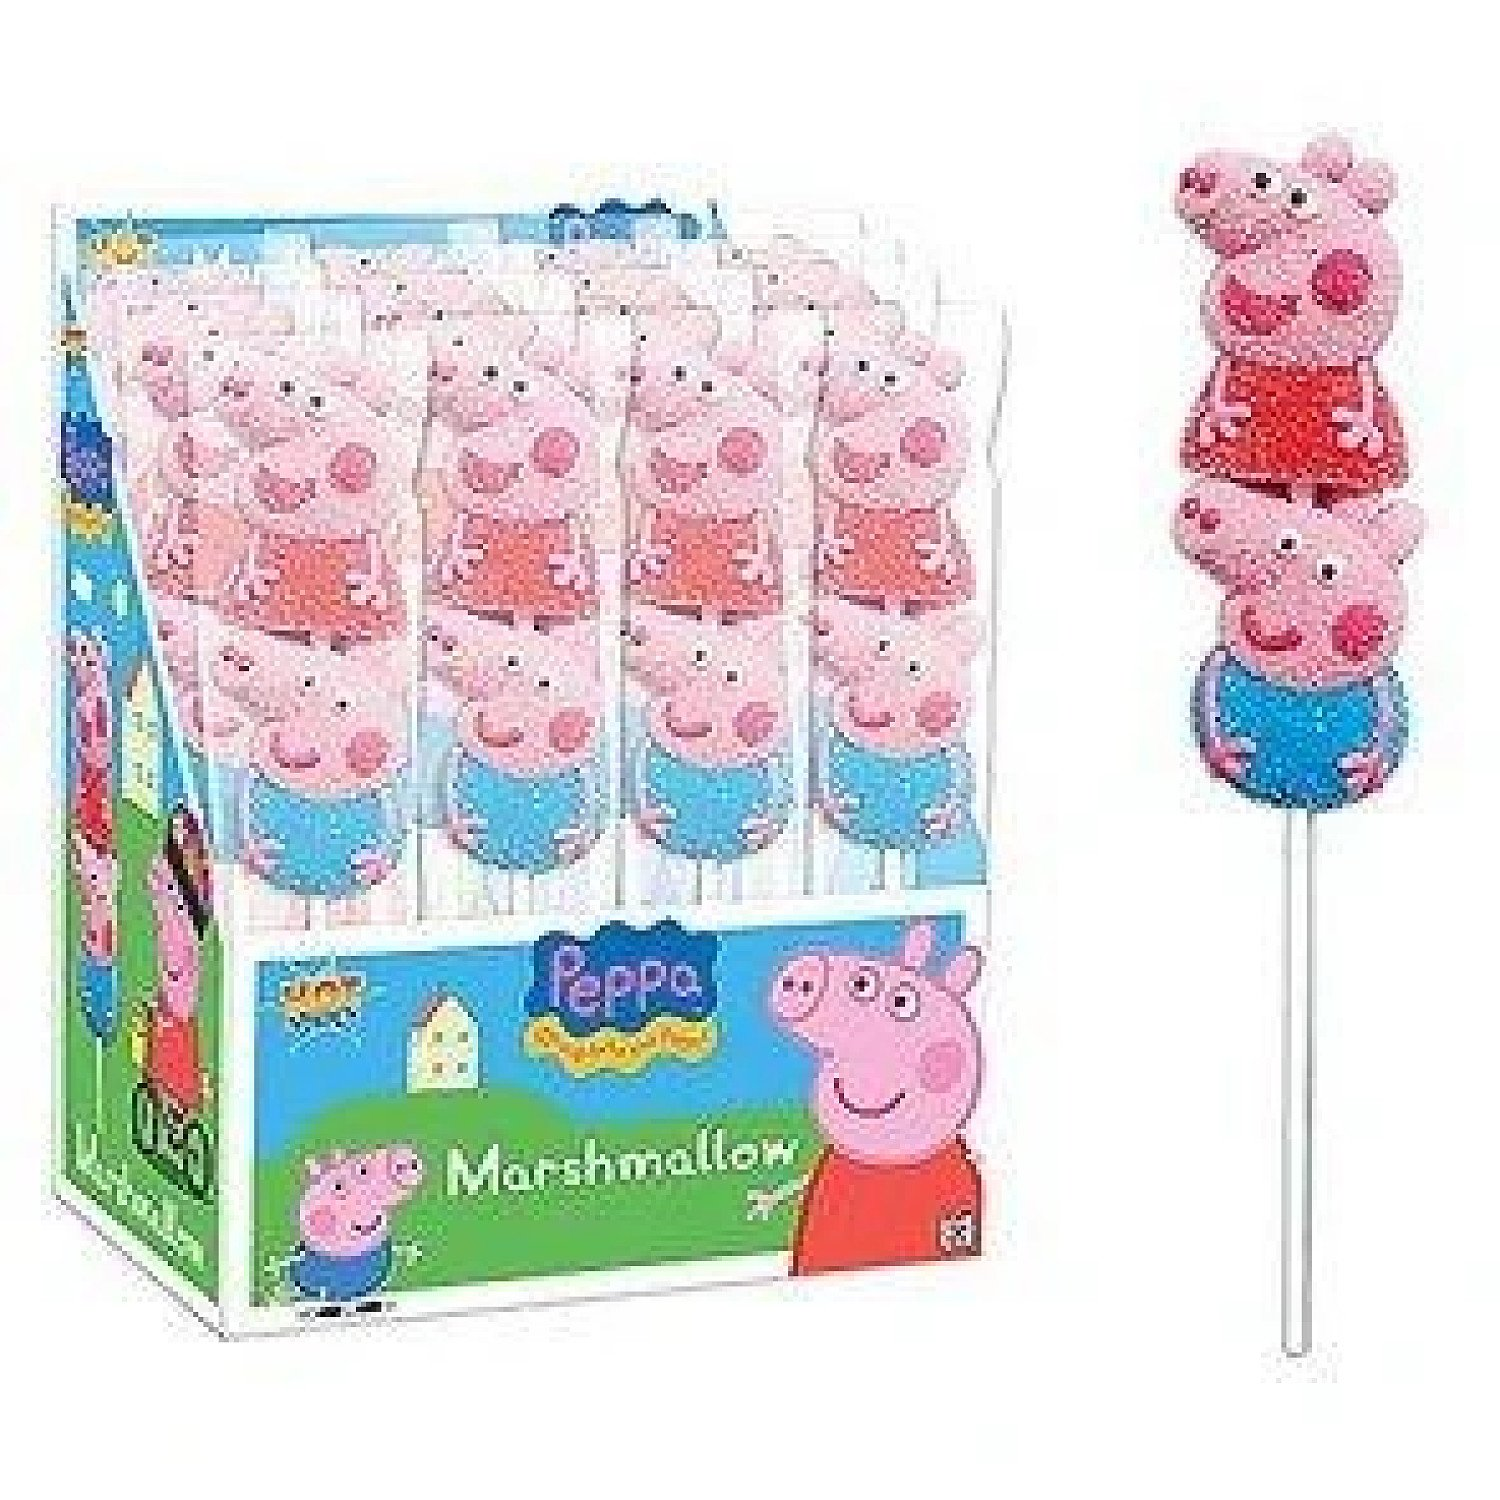 PEPPA PIG MARSHMALLOW POPS (BAZOOKA) 16 COUNT Free Postage